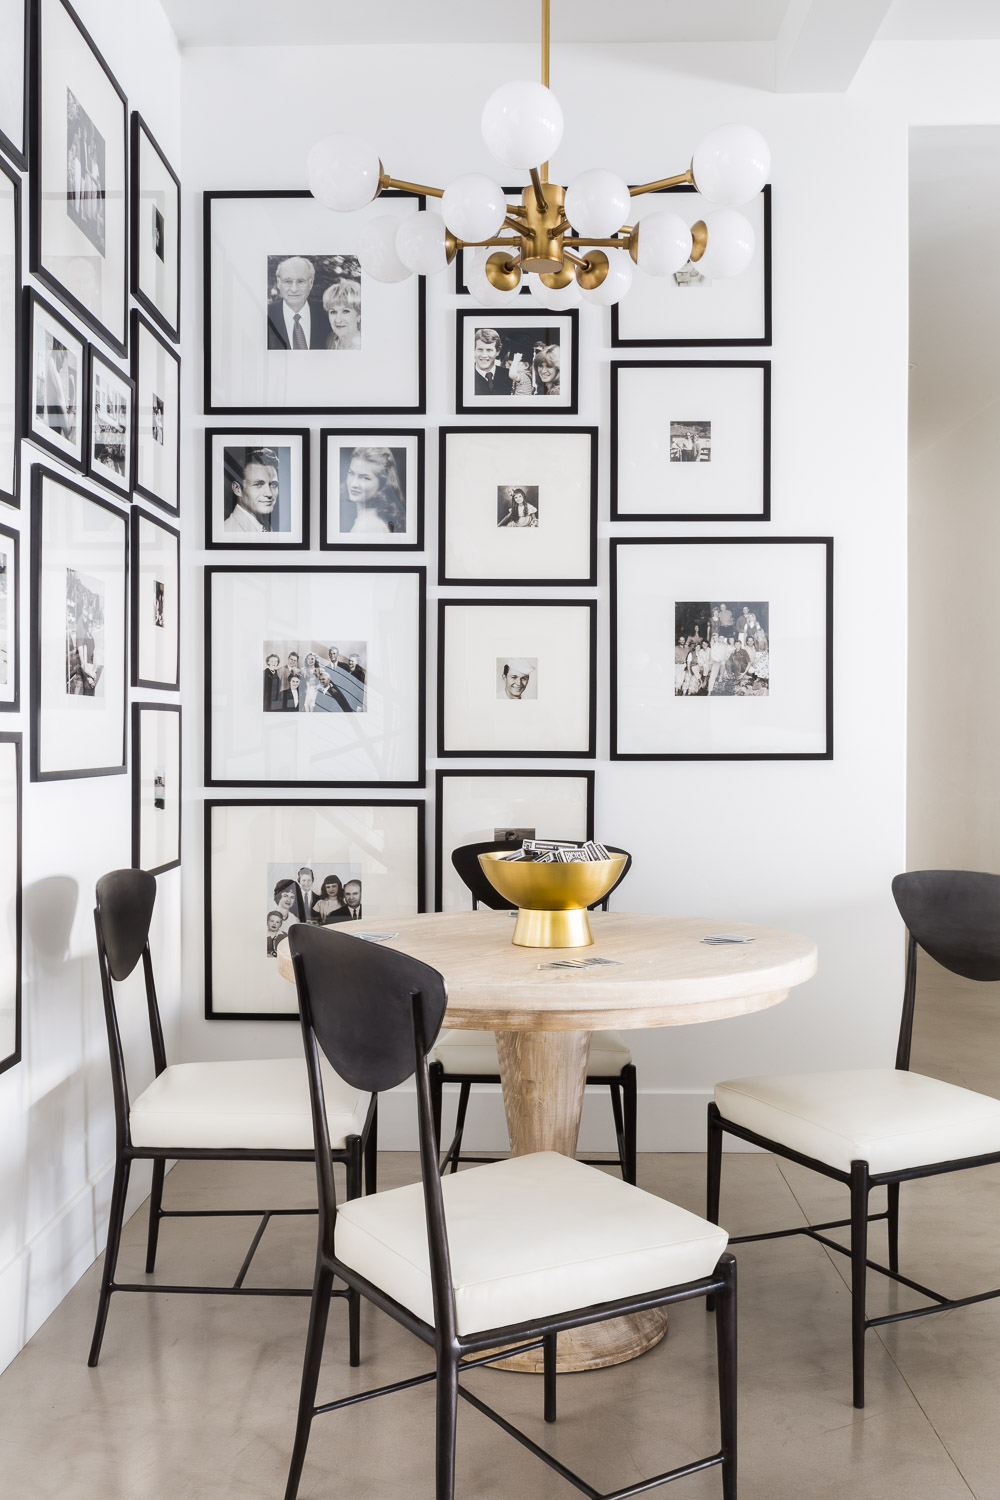 Gallery wall of photos in dining room